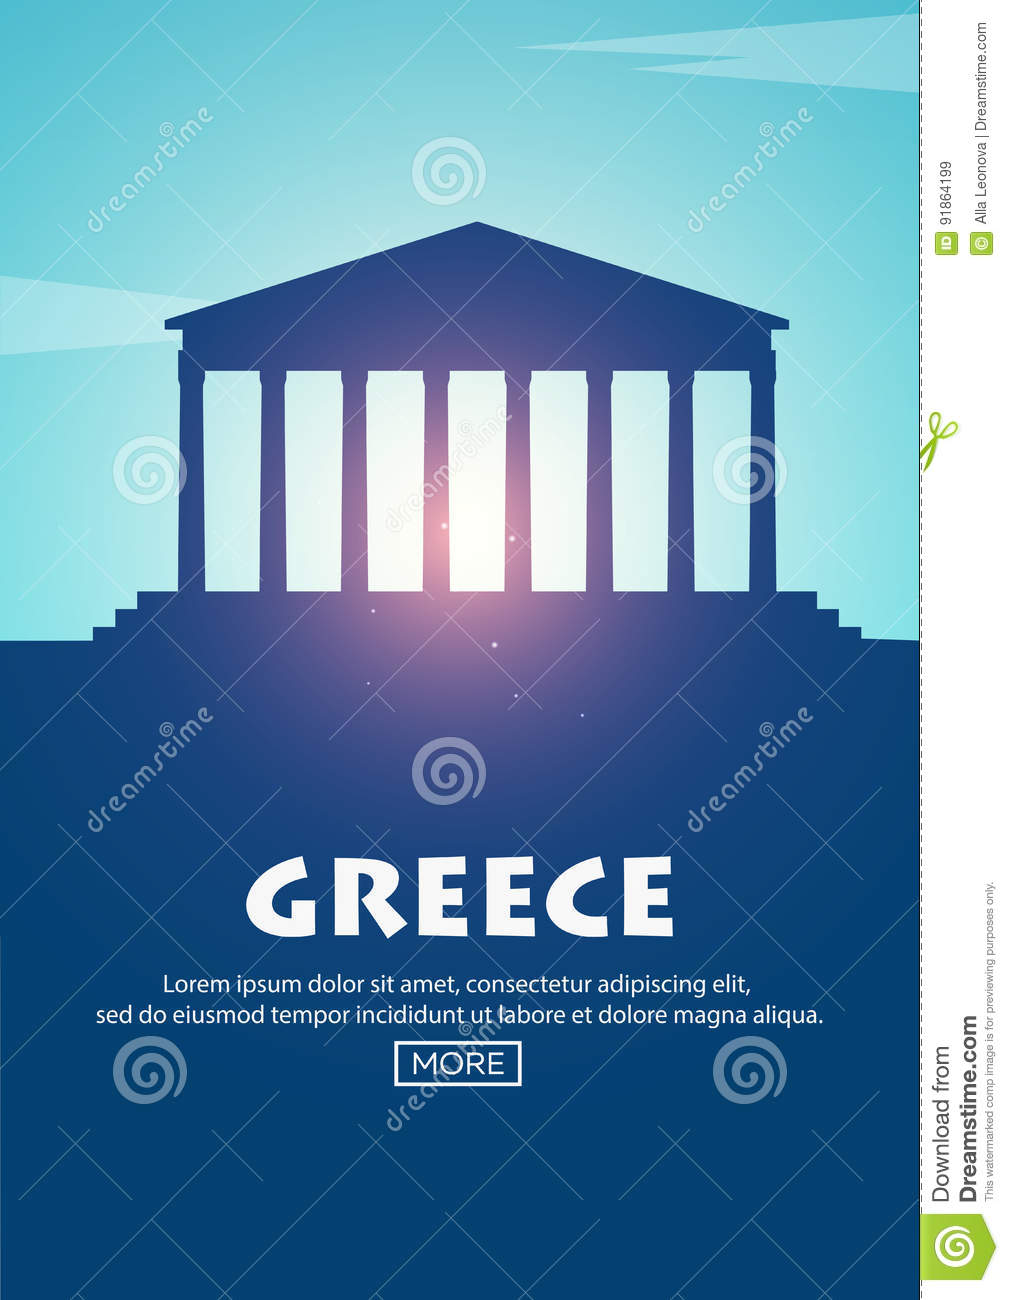 Travel poster to Greece. Landmarks silhouettes. Vector illustration.